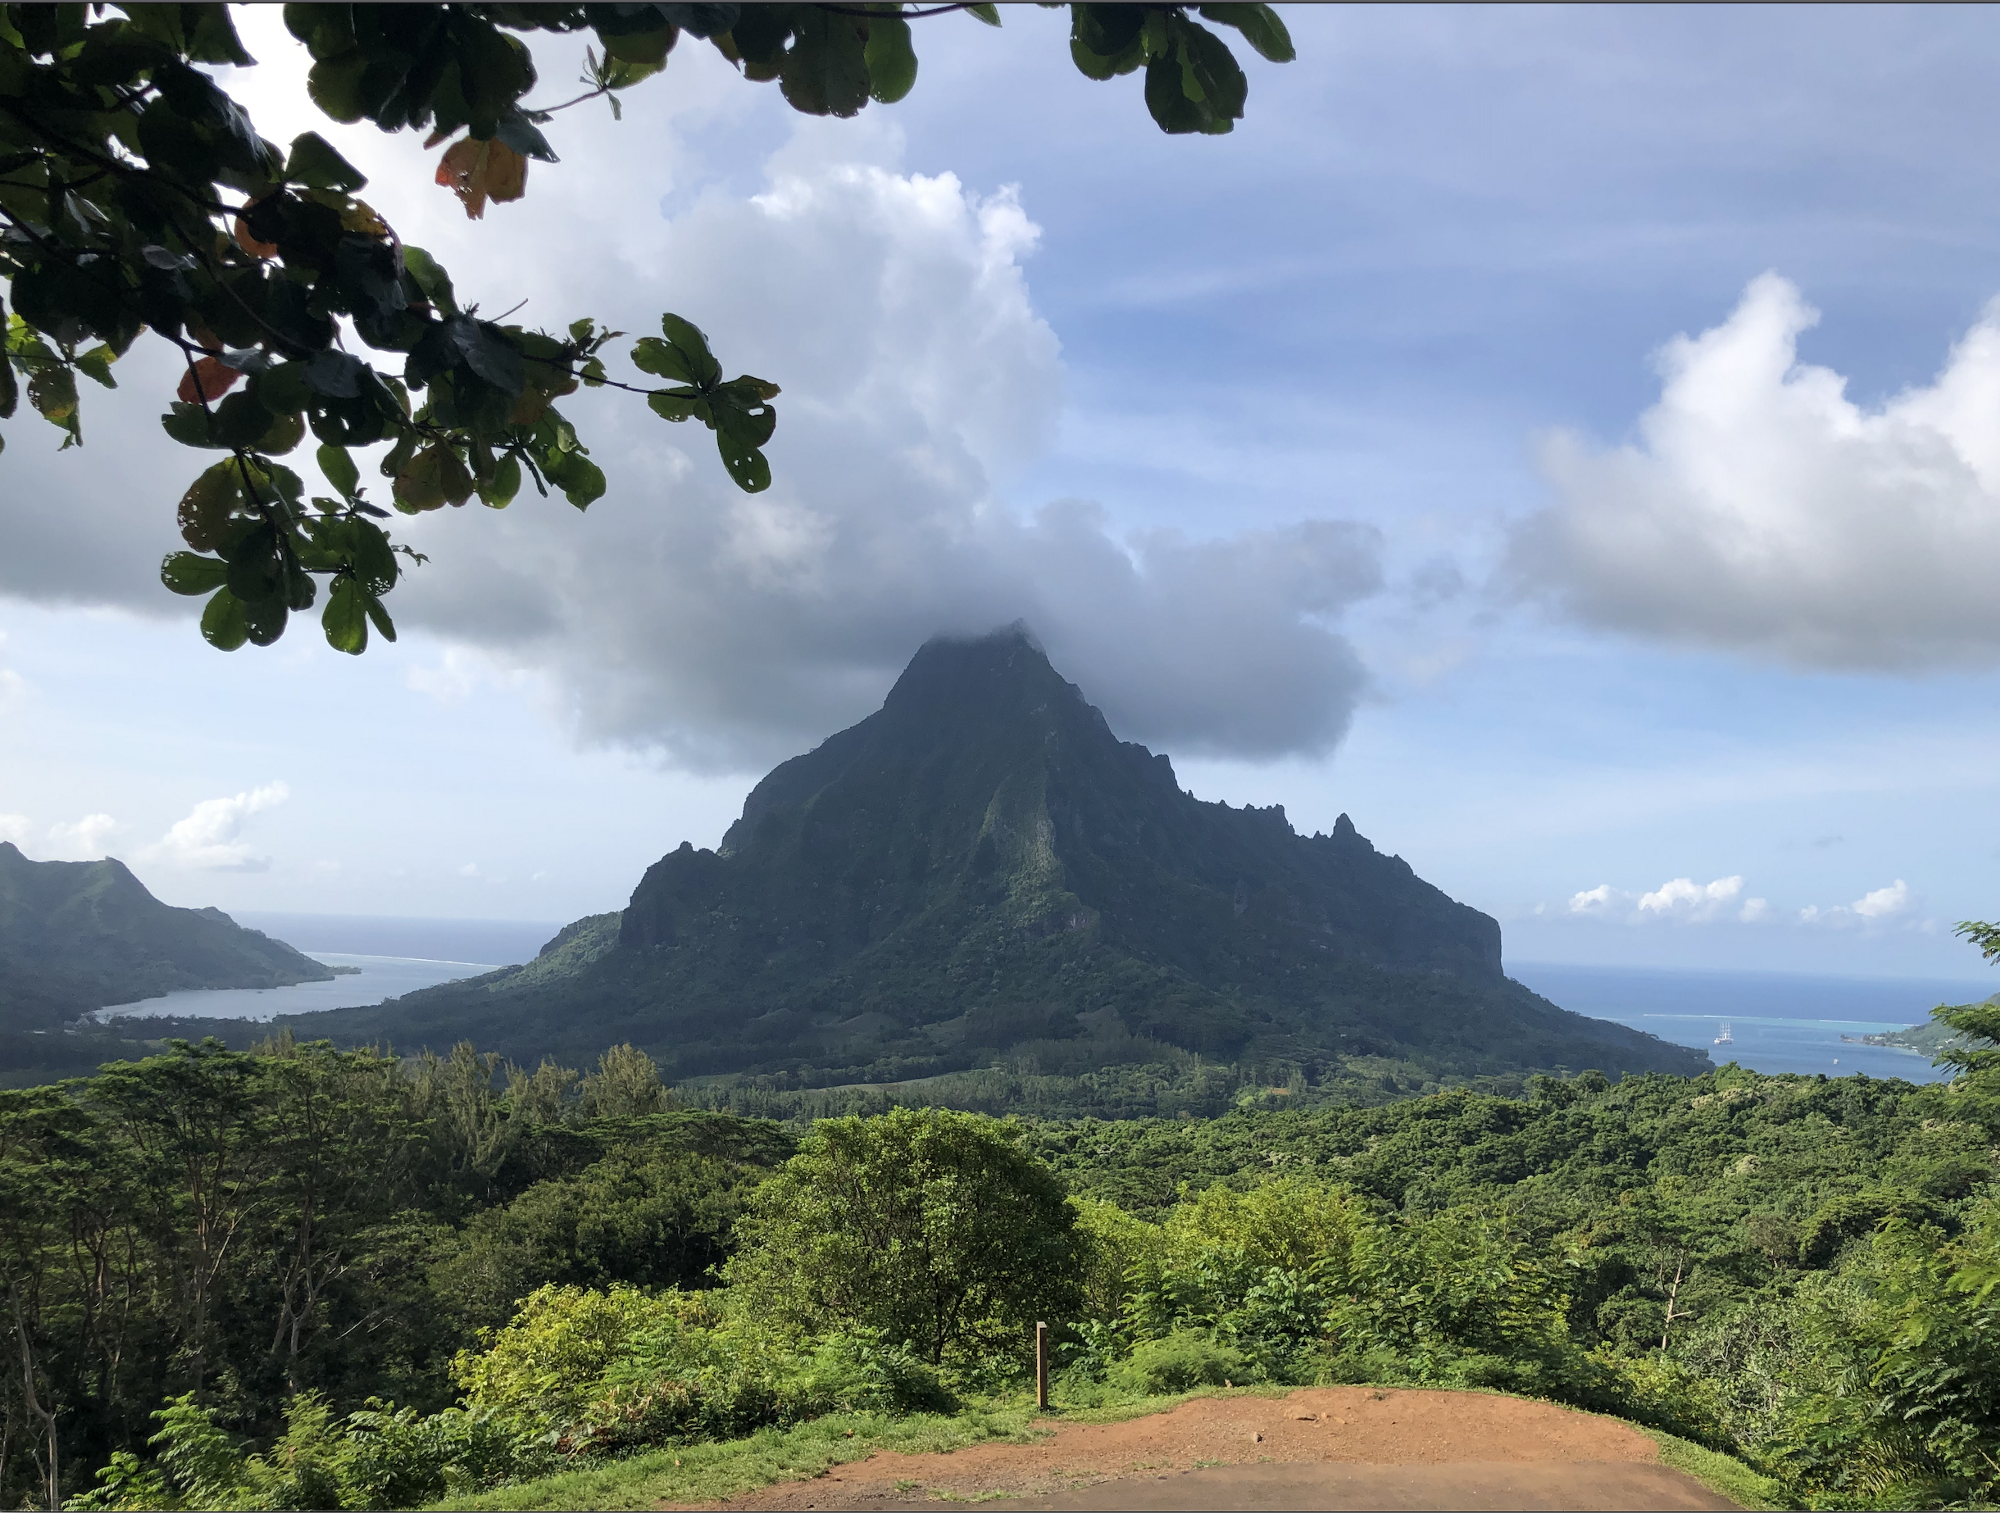 A landscape view of a tropical mountain in the distance surrounded by clouds and the ocean.